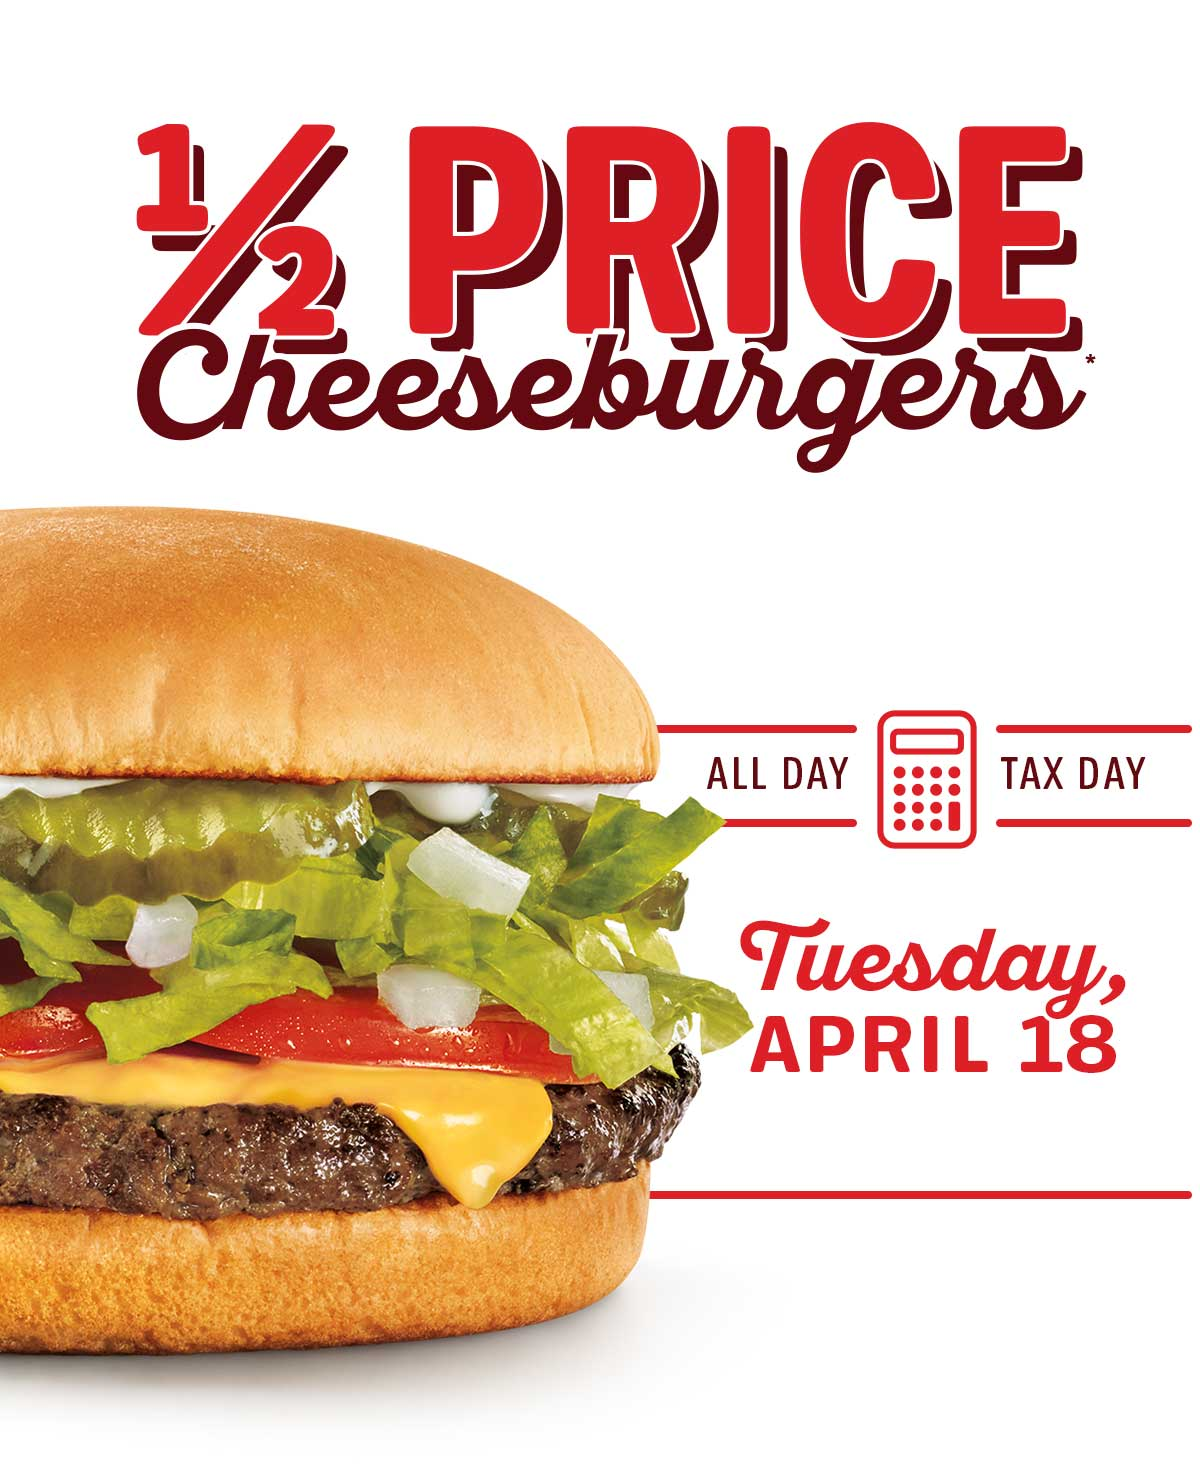 1/2 Price Cheesburgers!